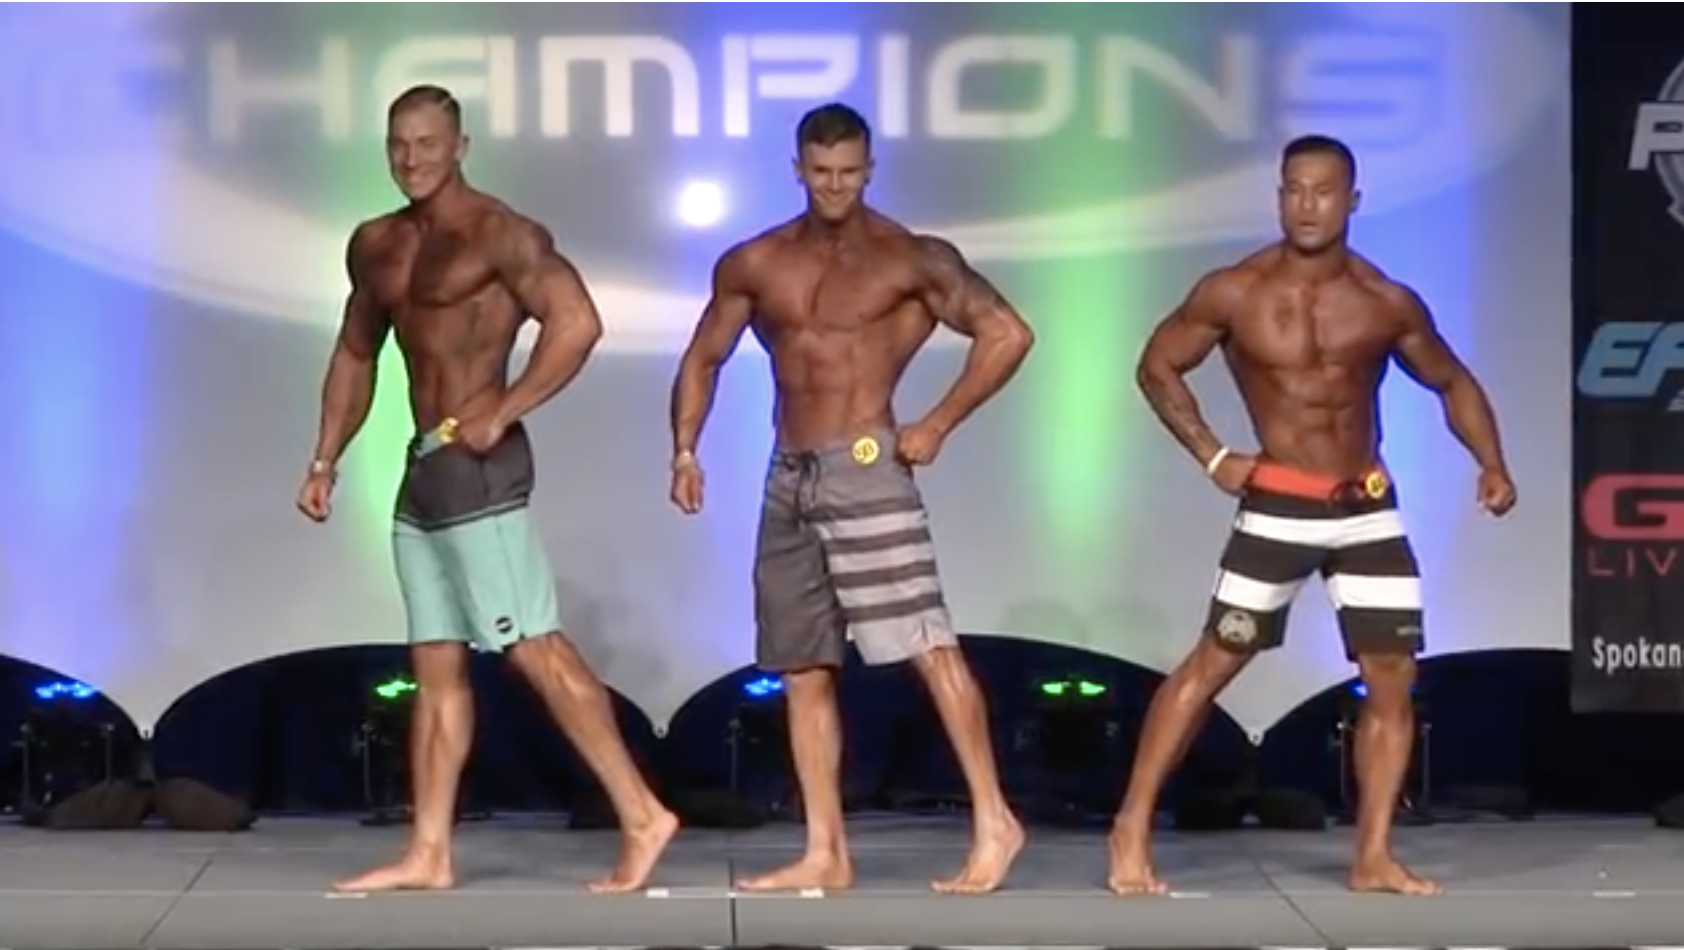 2017 NPC Night of Champions Men's Physique Overall Video